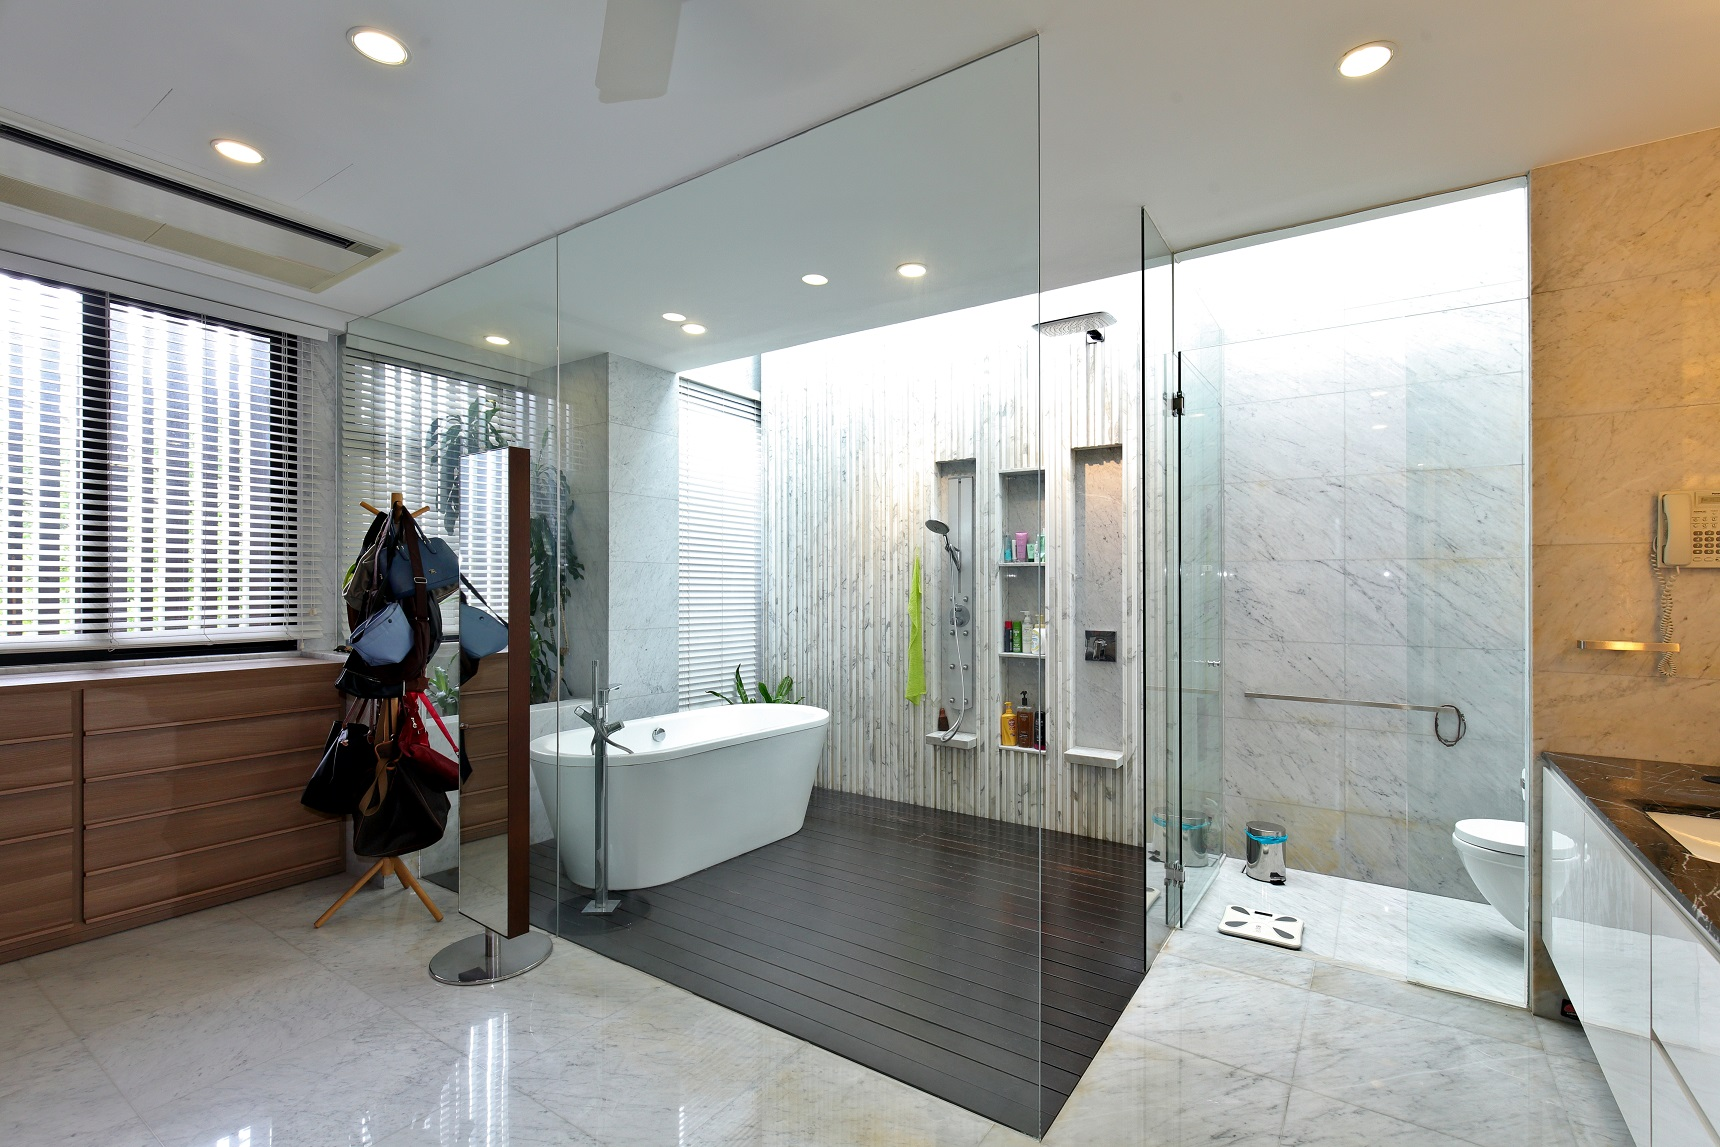 The master bathroom has a semi-open shower area, with chengal wood flooring and a feature wall of marble strips (Photo: Samuel Isaac Chua/EdgeProp Singapore)